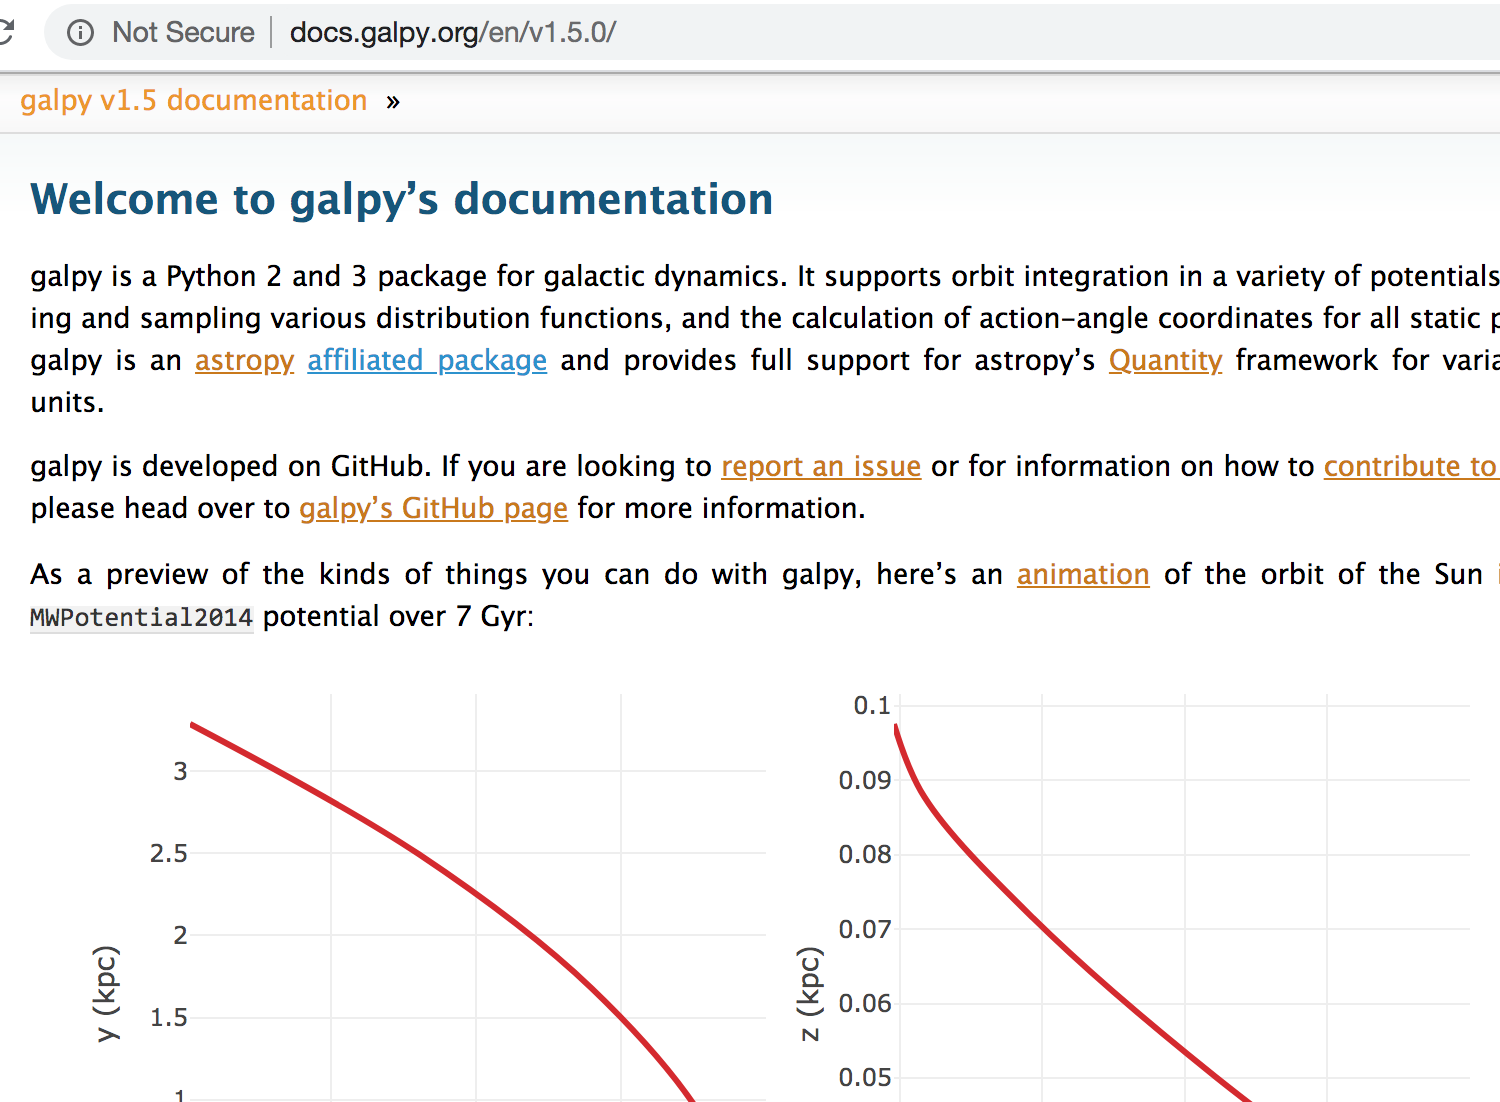 galpy documentation